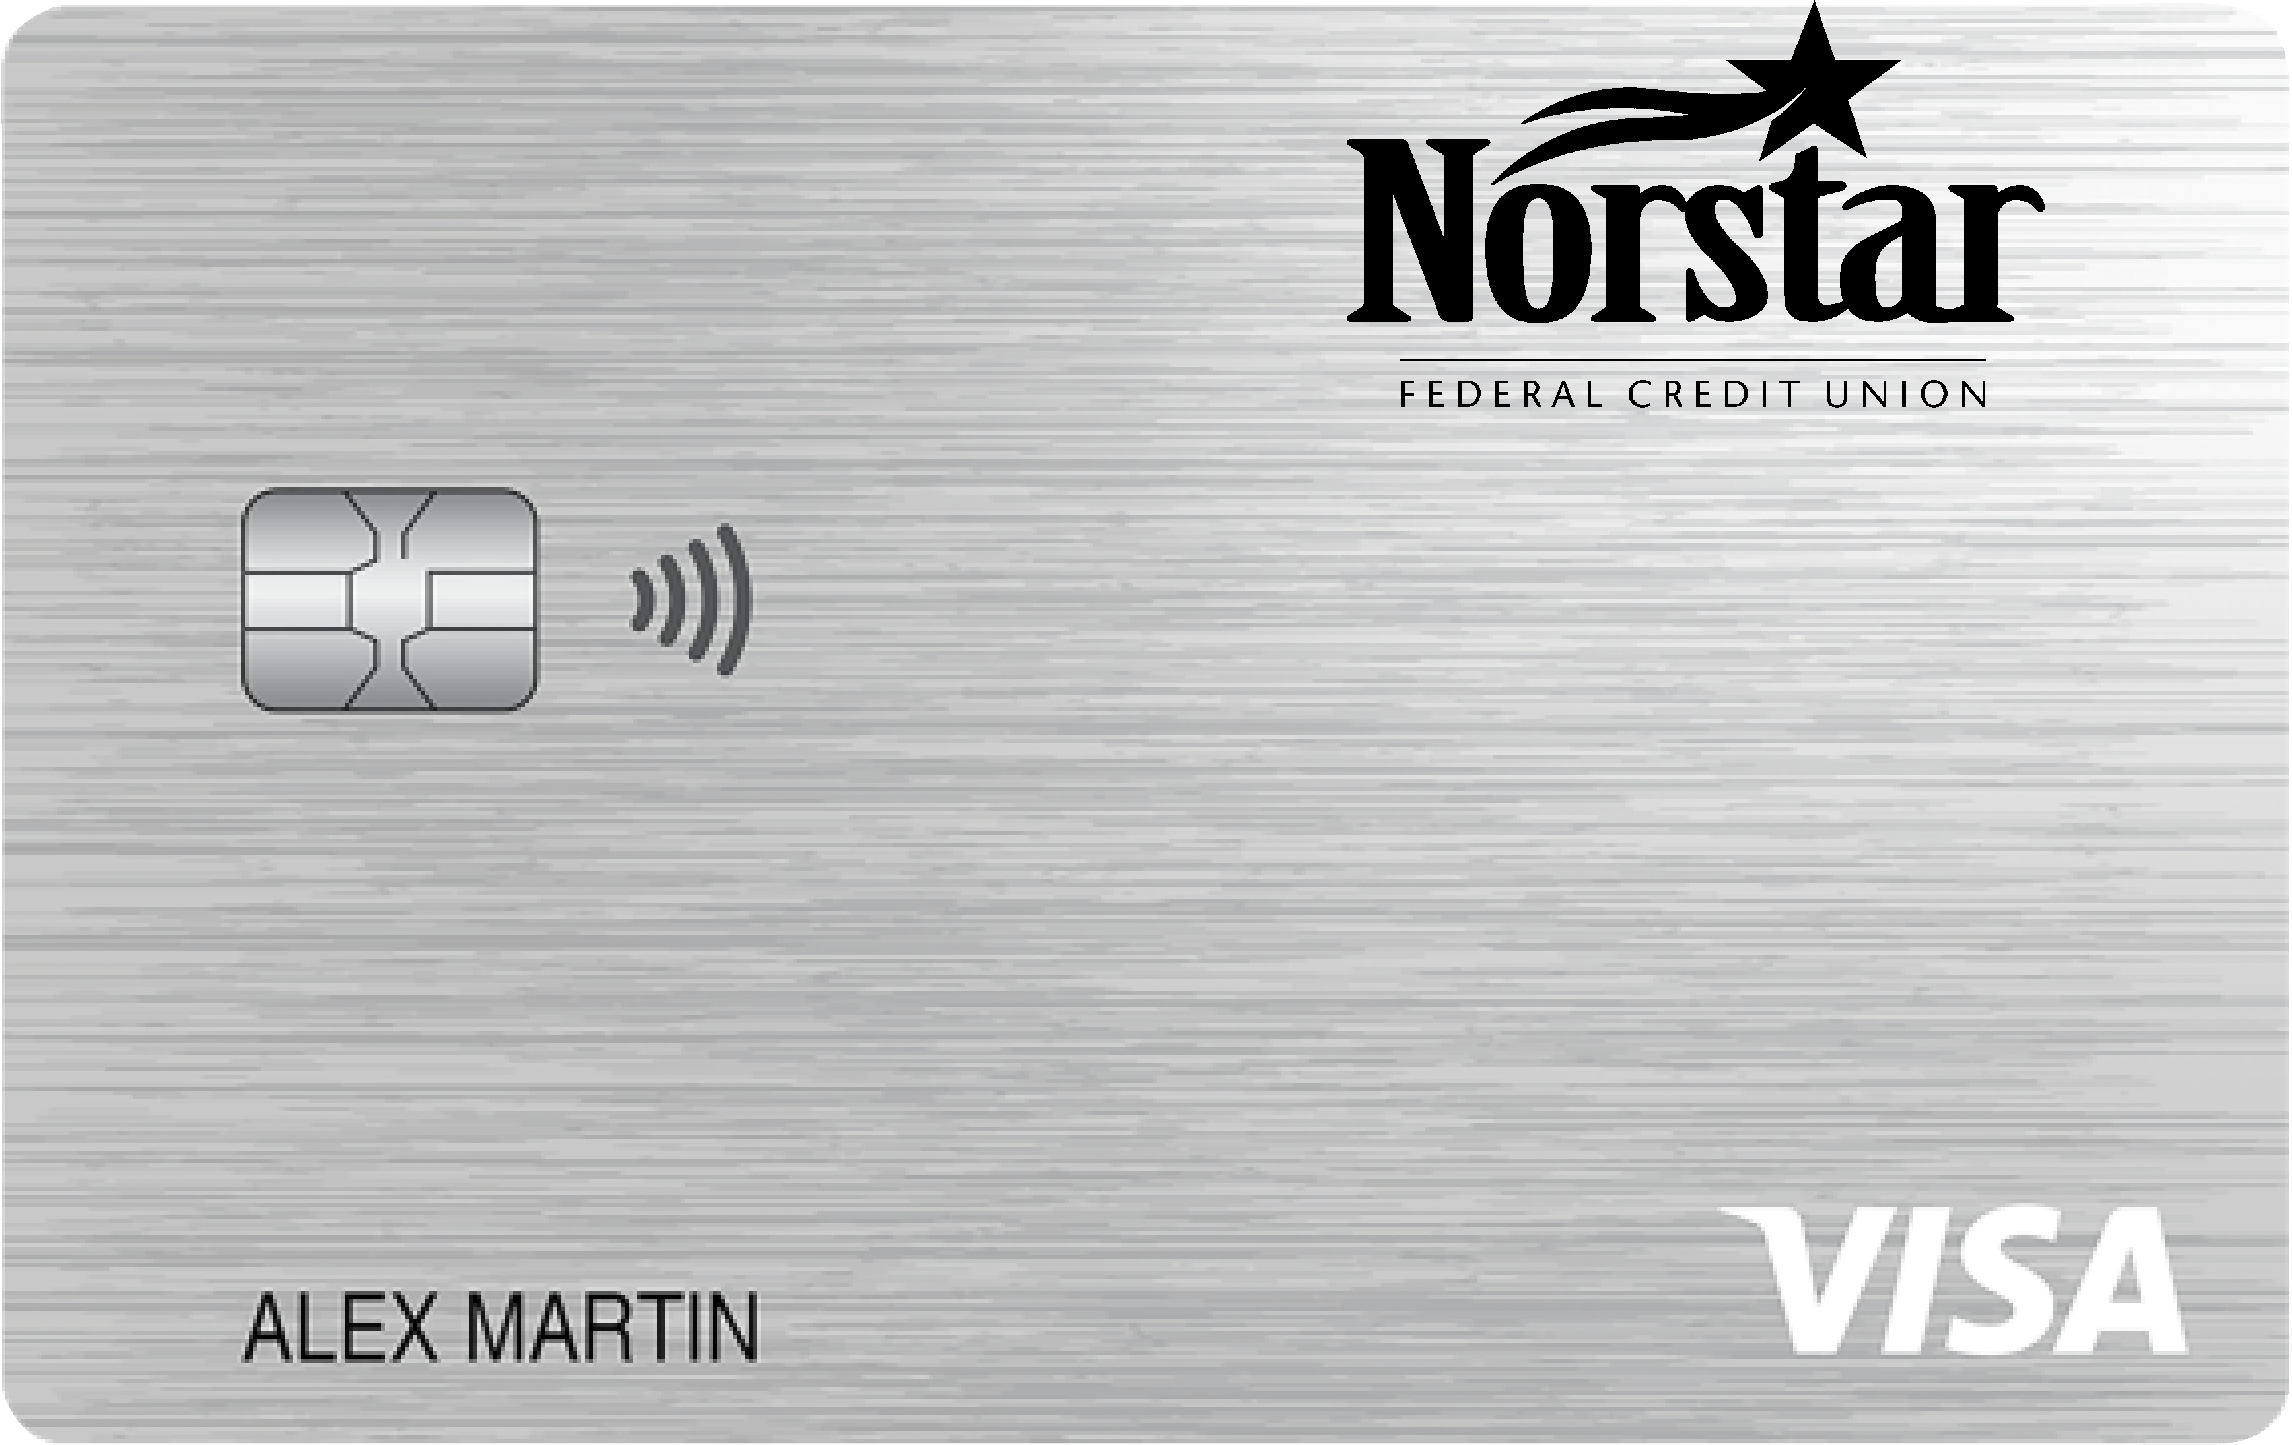 Norstar Federal Credit Union